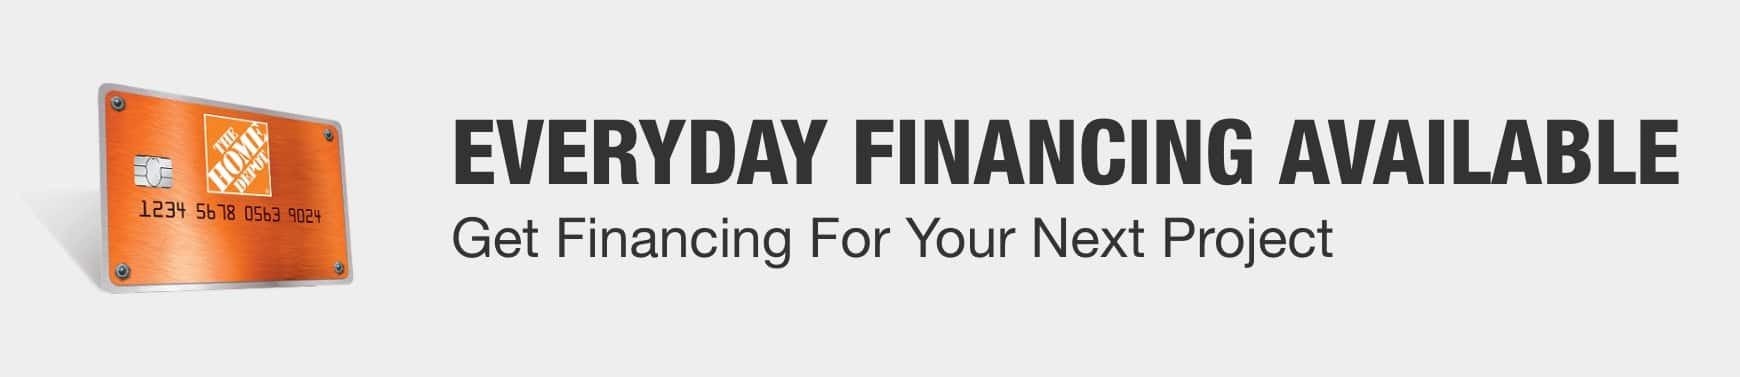 Everyday Financing Available